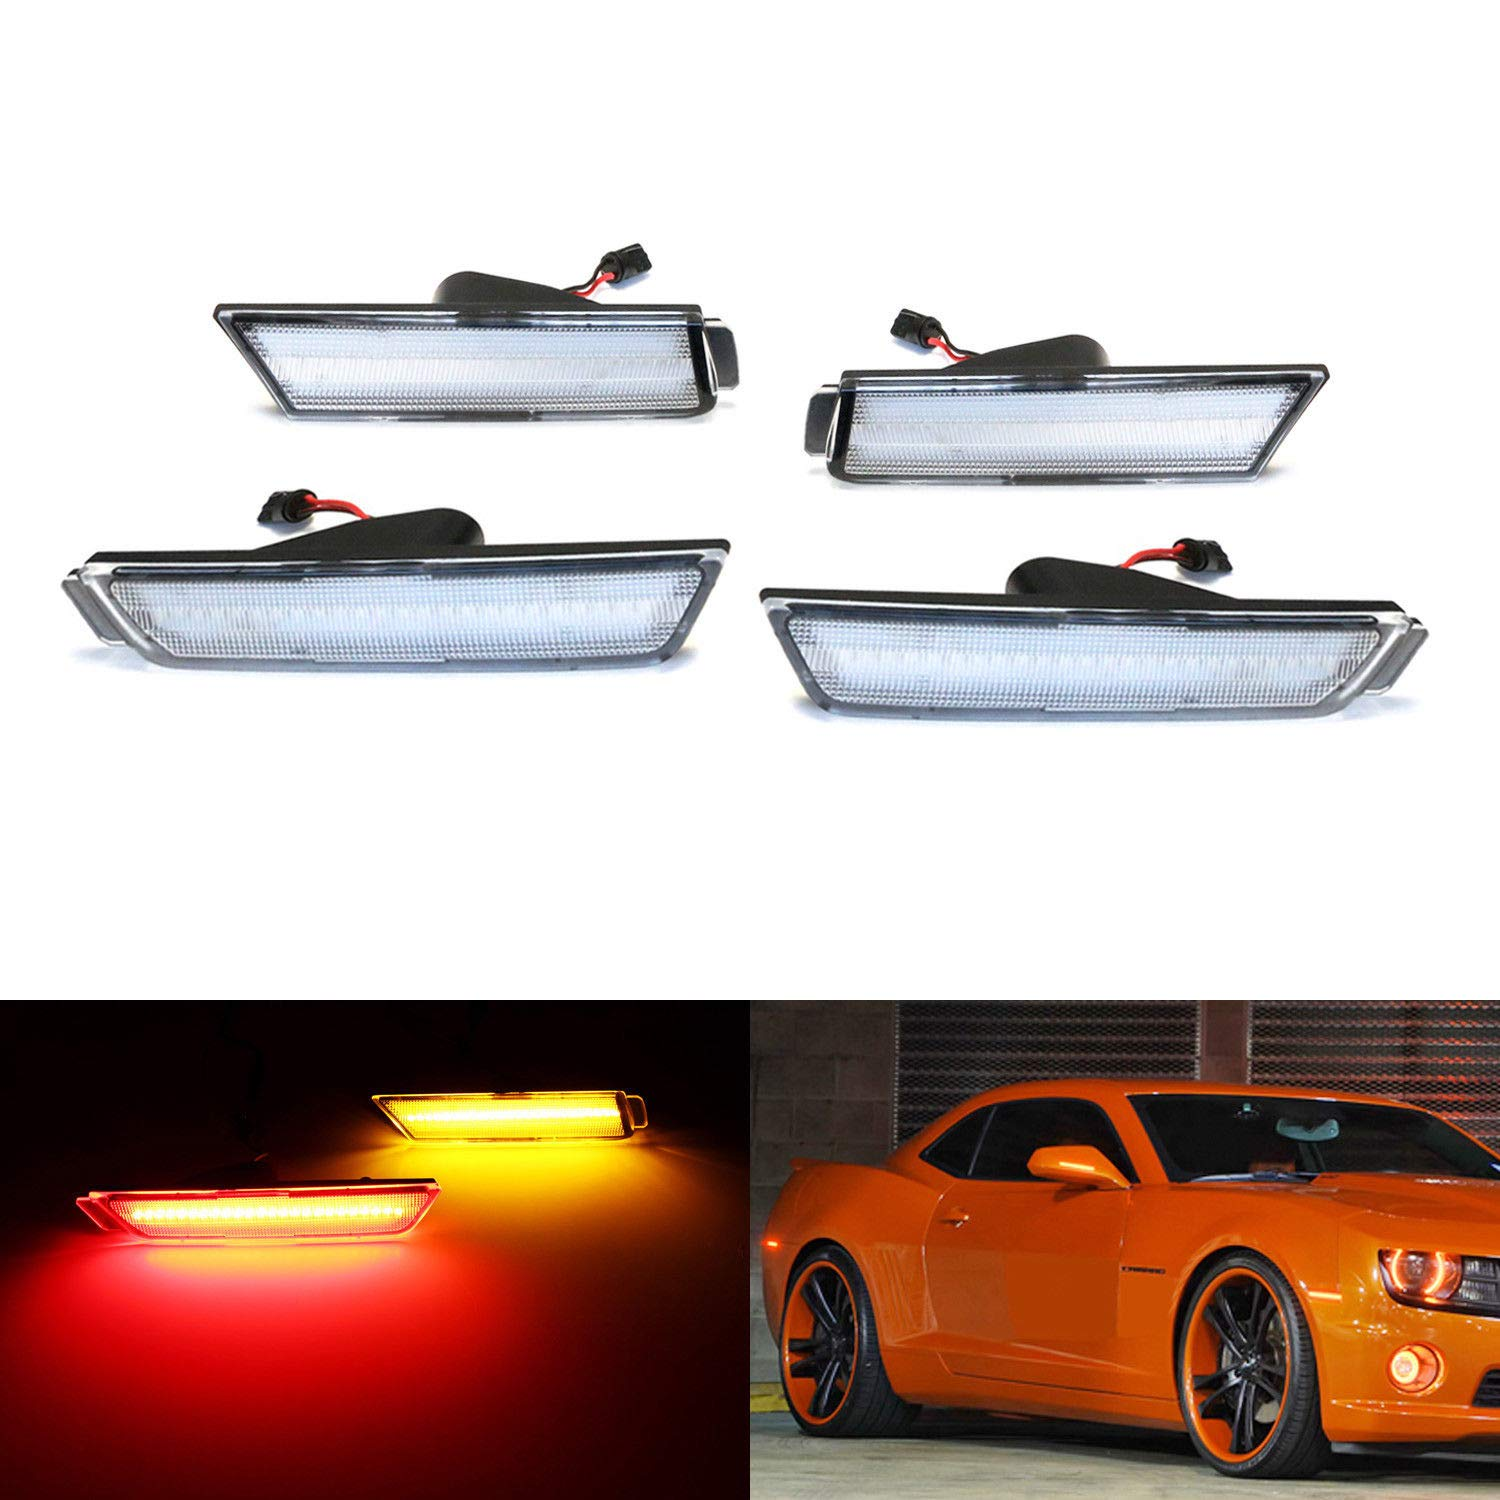 iJDMTOY (4) Smoked Lens Front & Rear Side Marker Lamps with 96-SMD LED Lights For 2010-2015 Chevrolet Camaro (Front: Amber, Rear: Red) iJDMTOY Auto Accessories Direct Fit Sidemarker Lamp Replacement